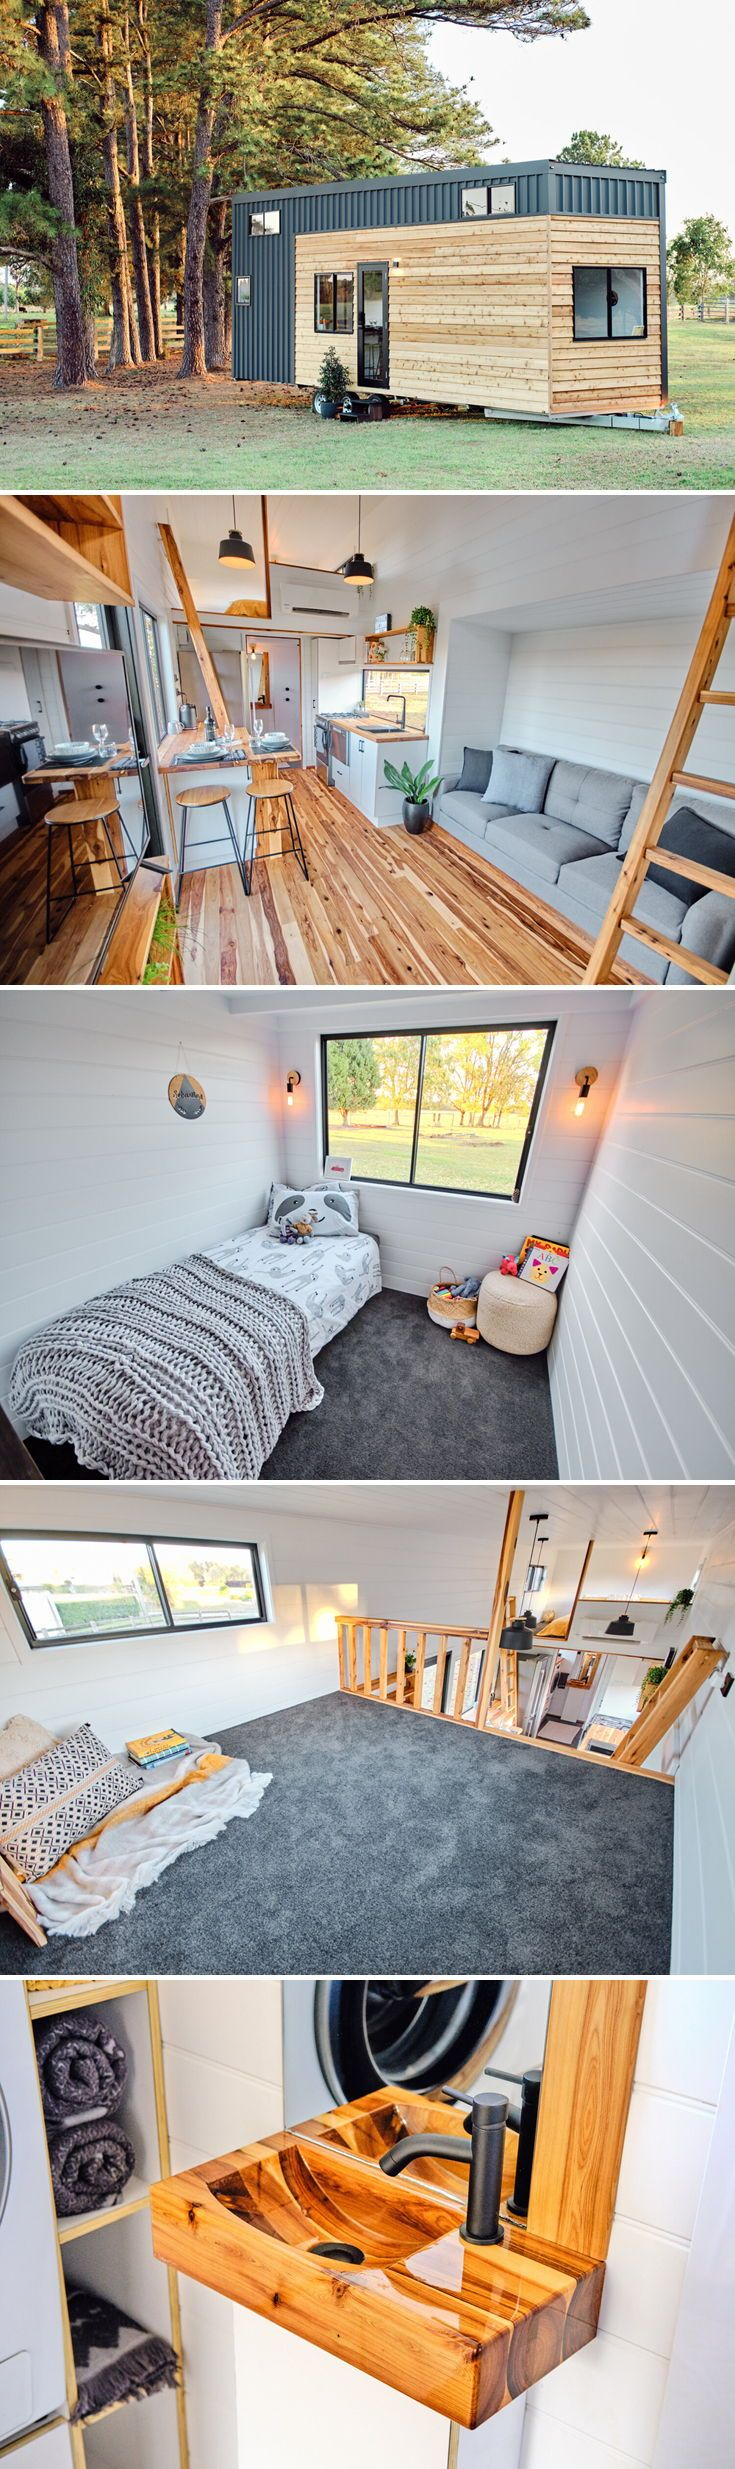 Grand Sojourner by Häuslein Tiny House Co - Tiny Living